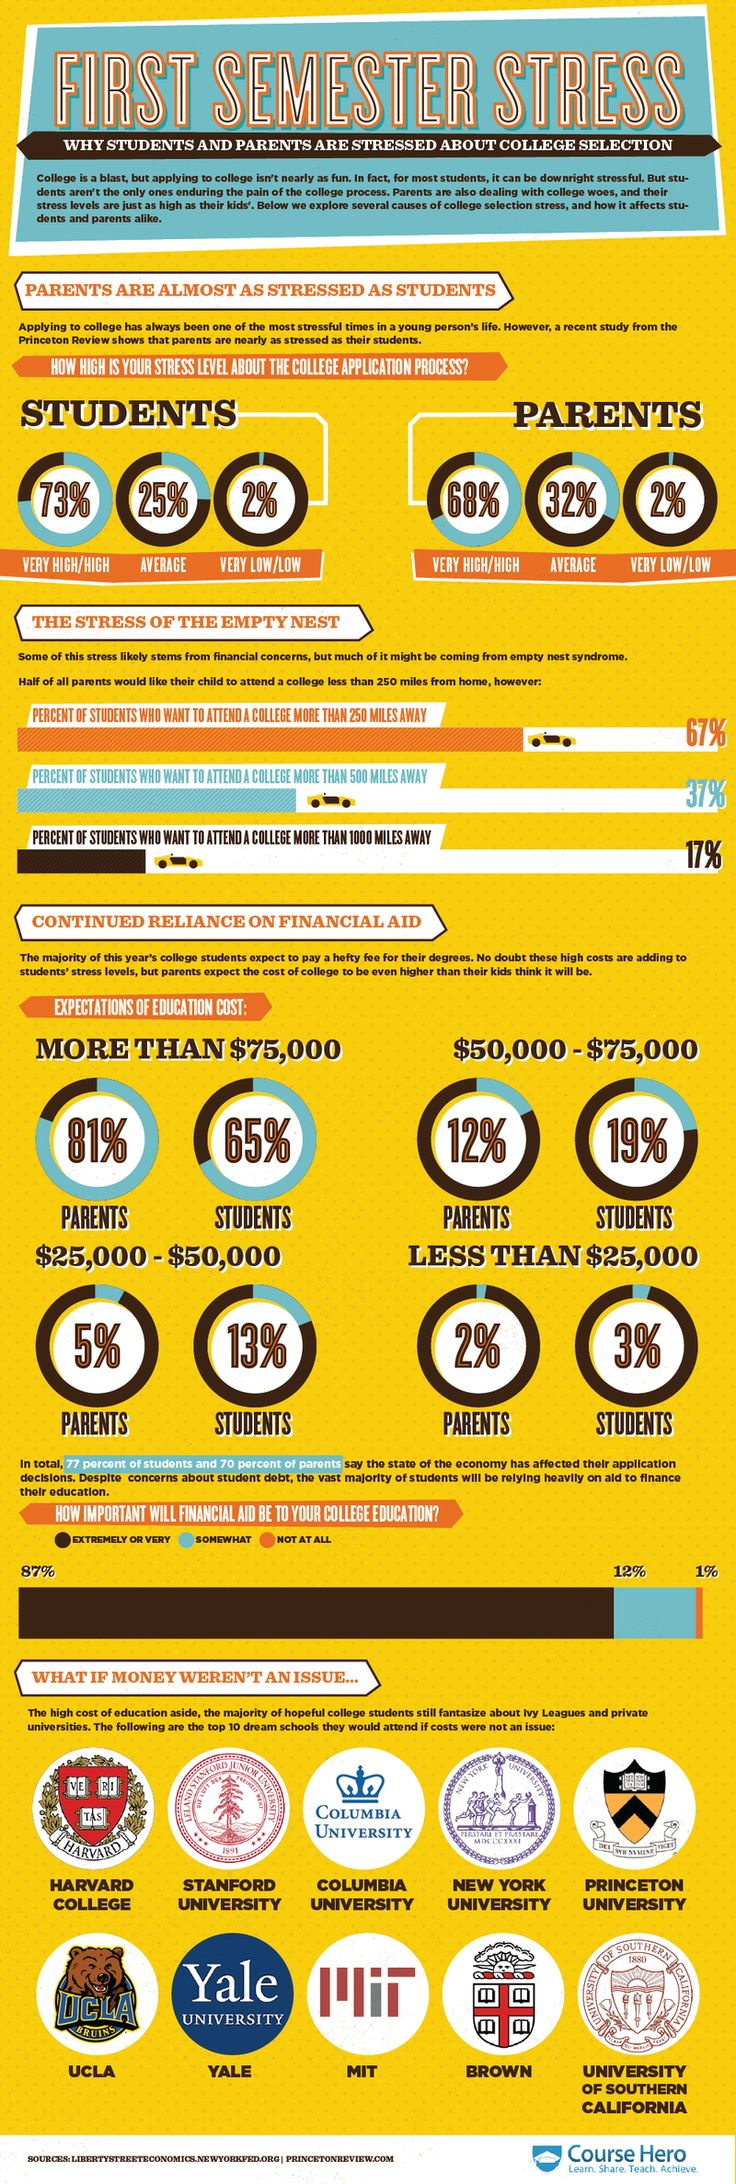 How Does College Selection Stress Out Students and Parents? #infographic